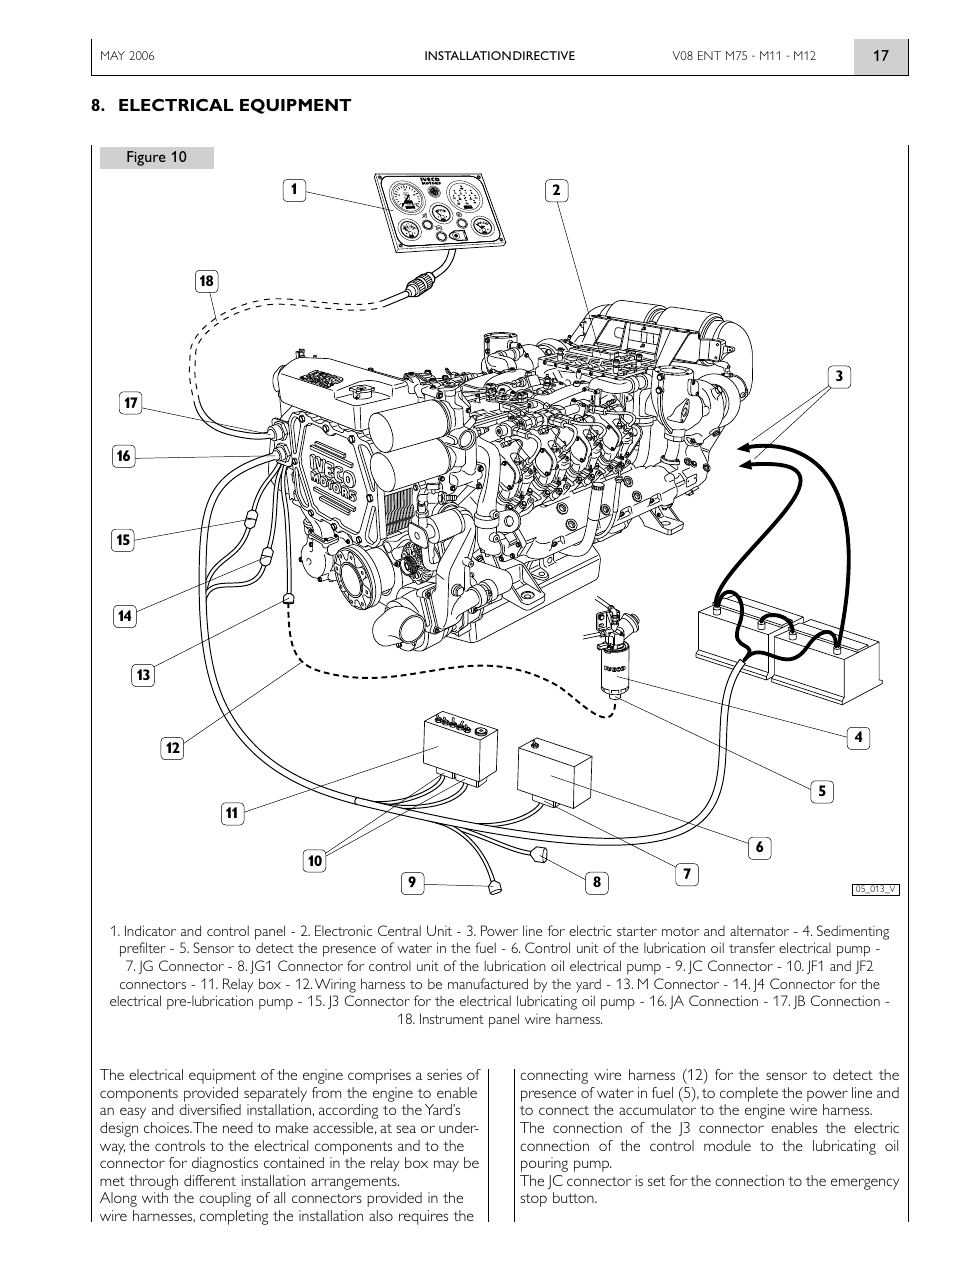 Electrical Equipment Vector Iveco Motos V08 Ent M12 User Manual Engine Control Module Wiring Harness Connector Page 17 60